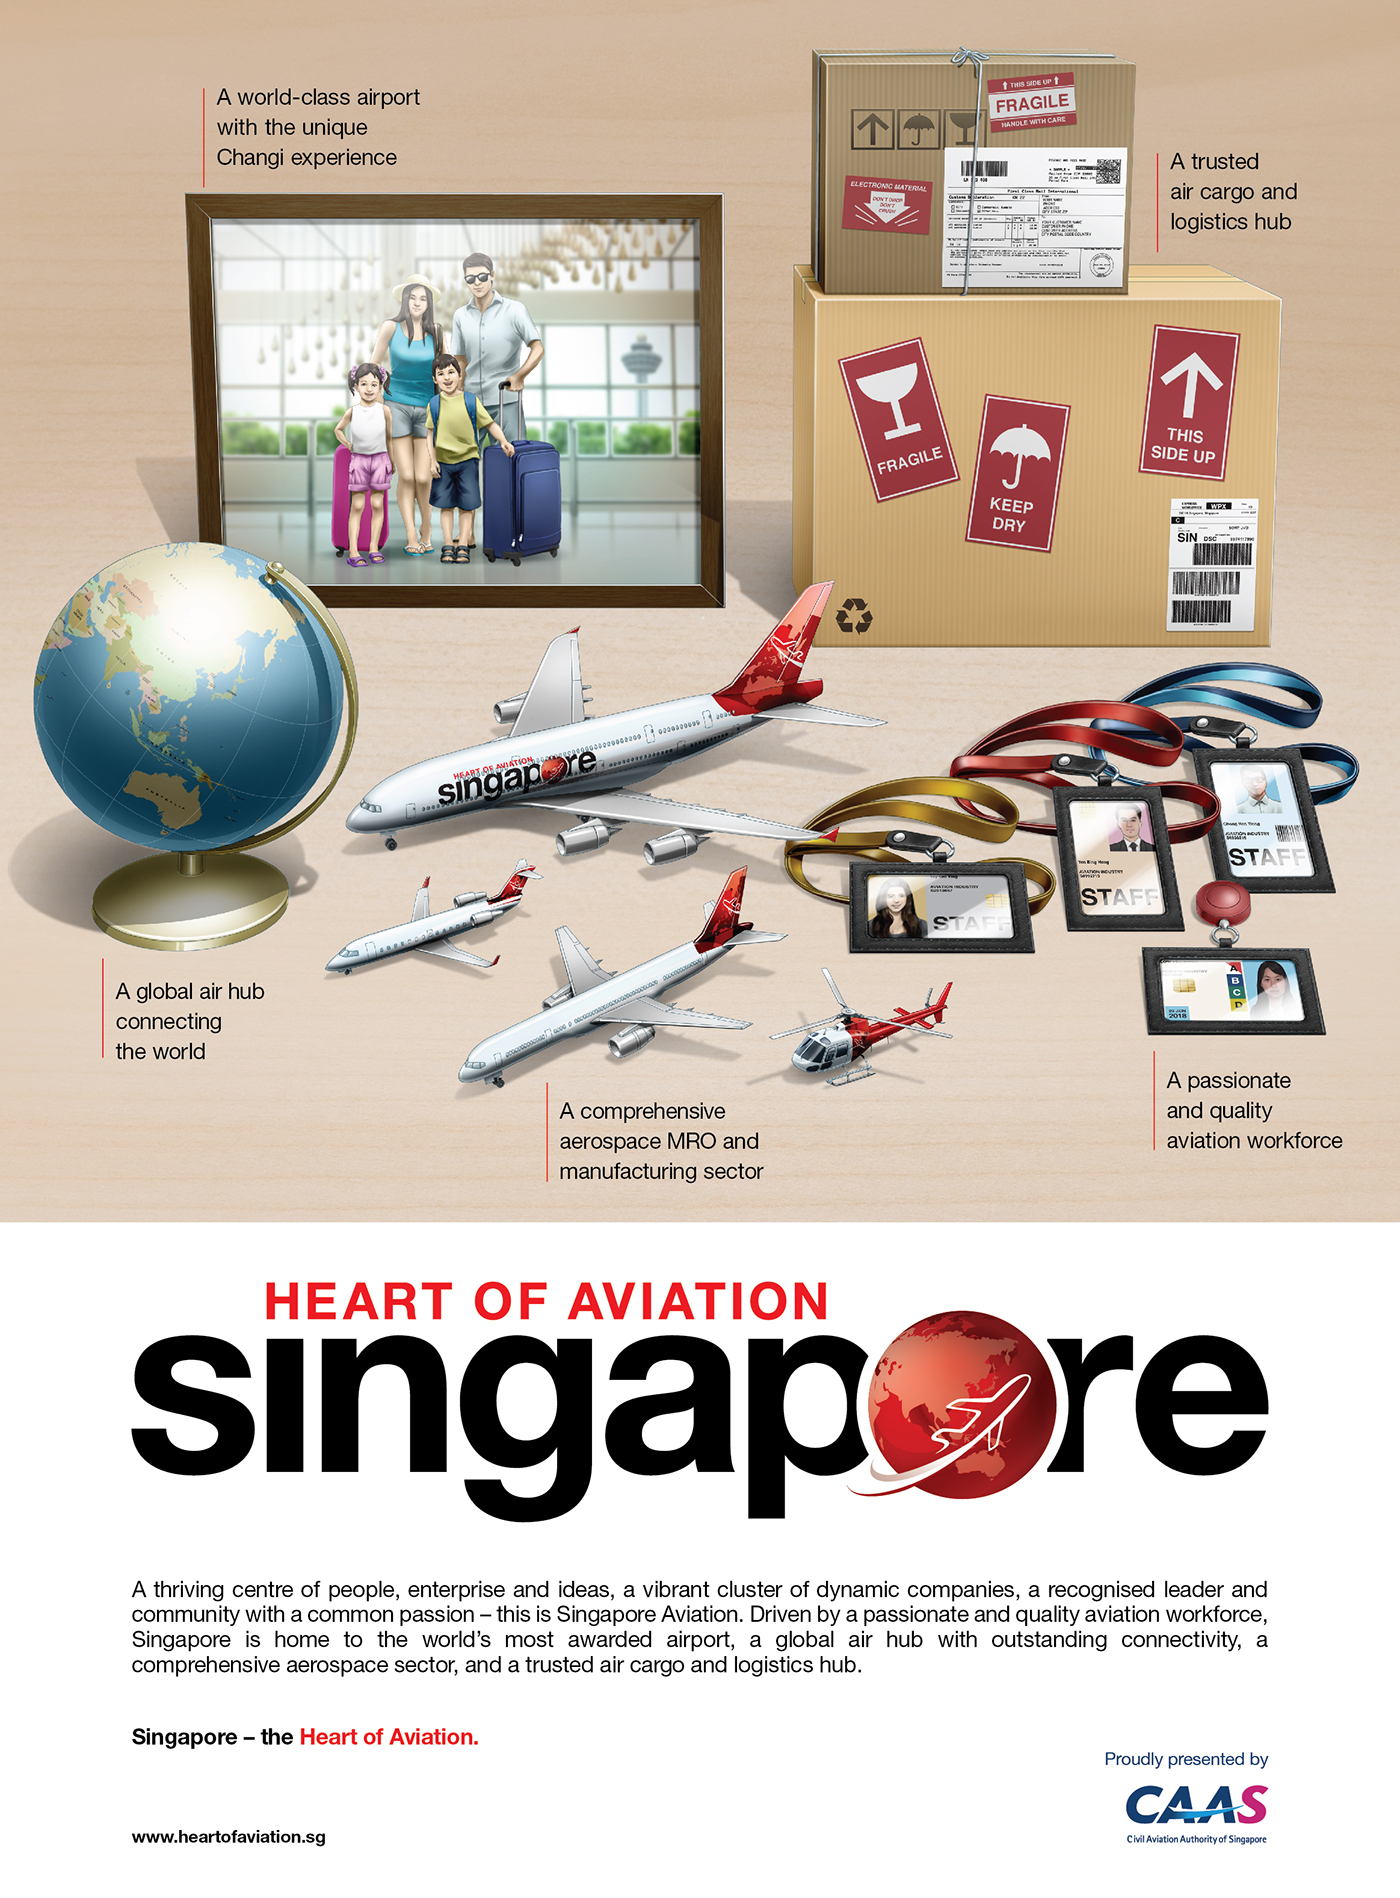 ILLUSTRATION  CAAS aviation poster ad logistic airport changi airport